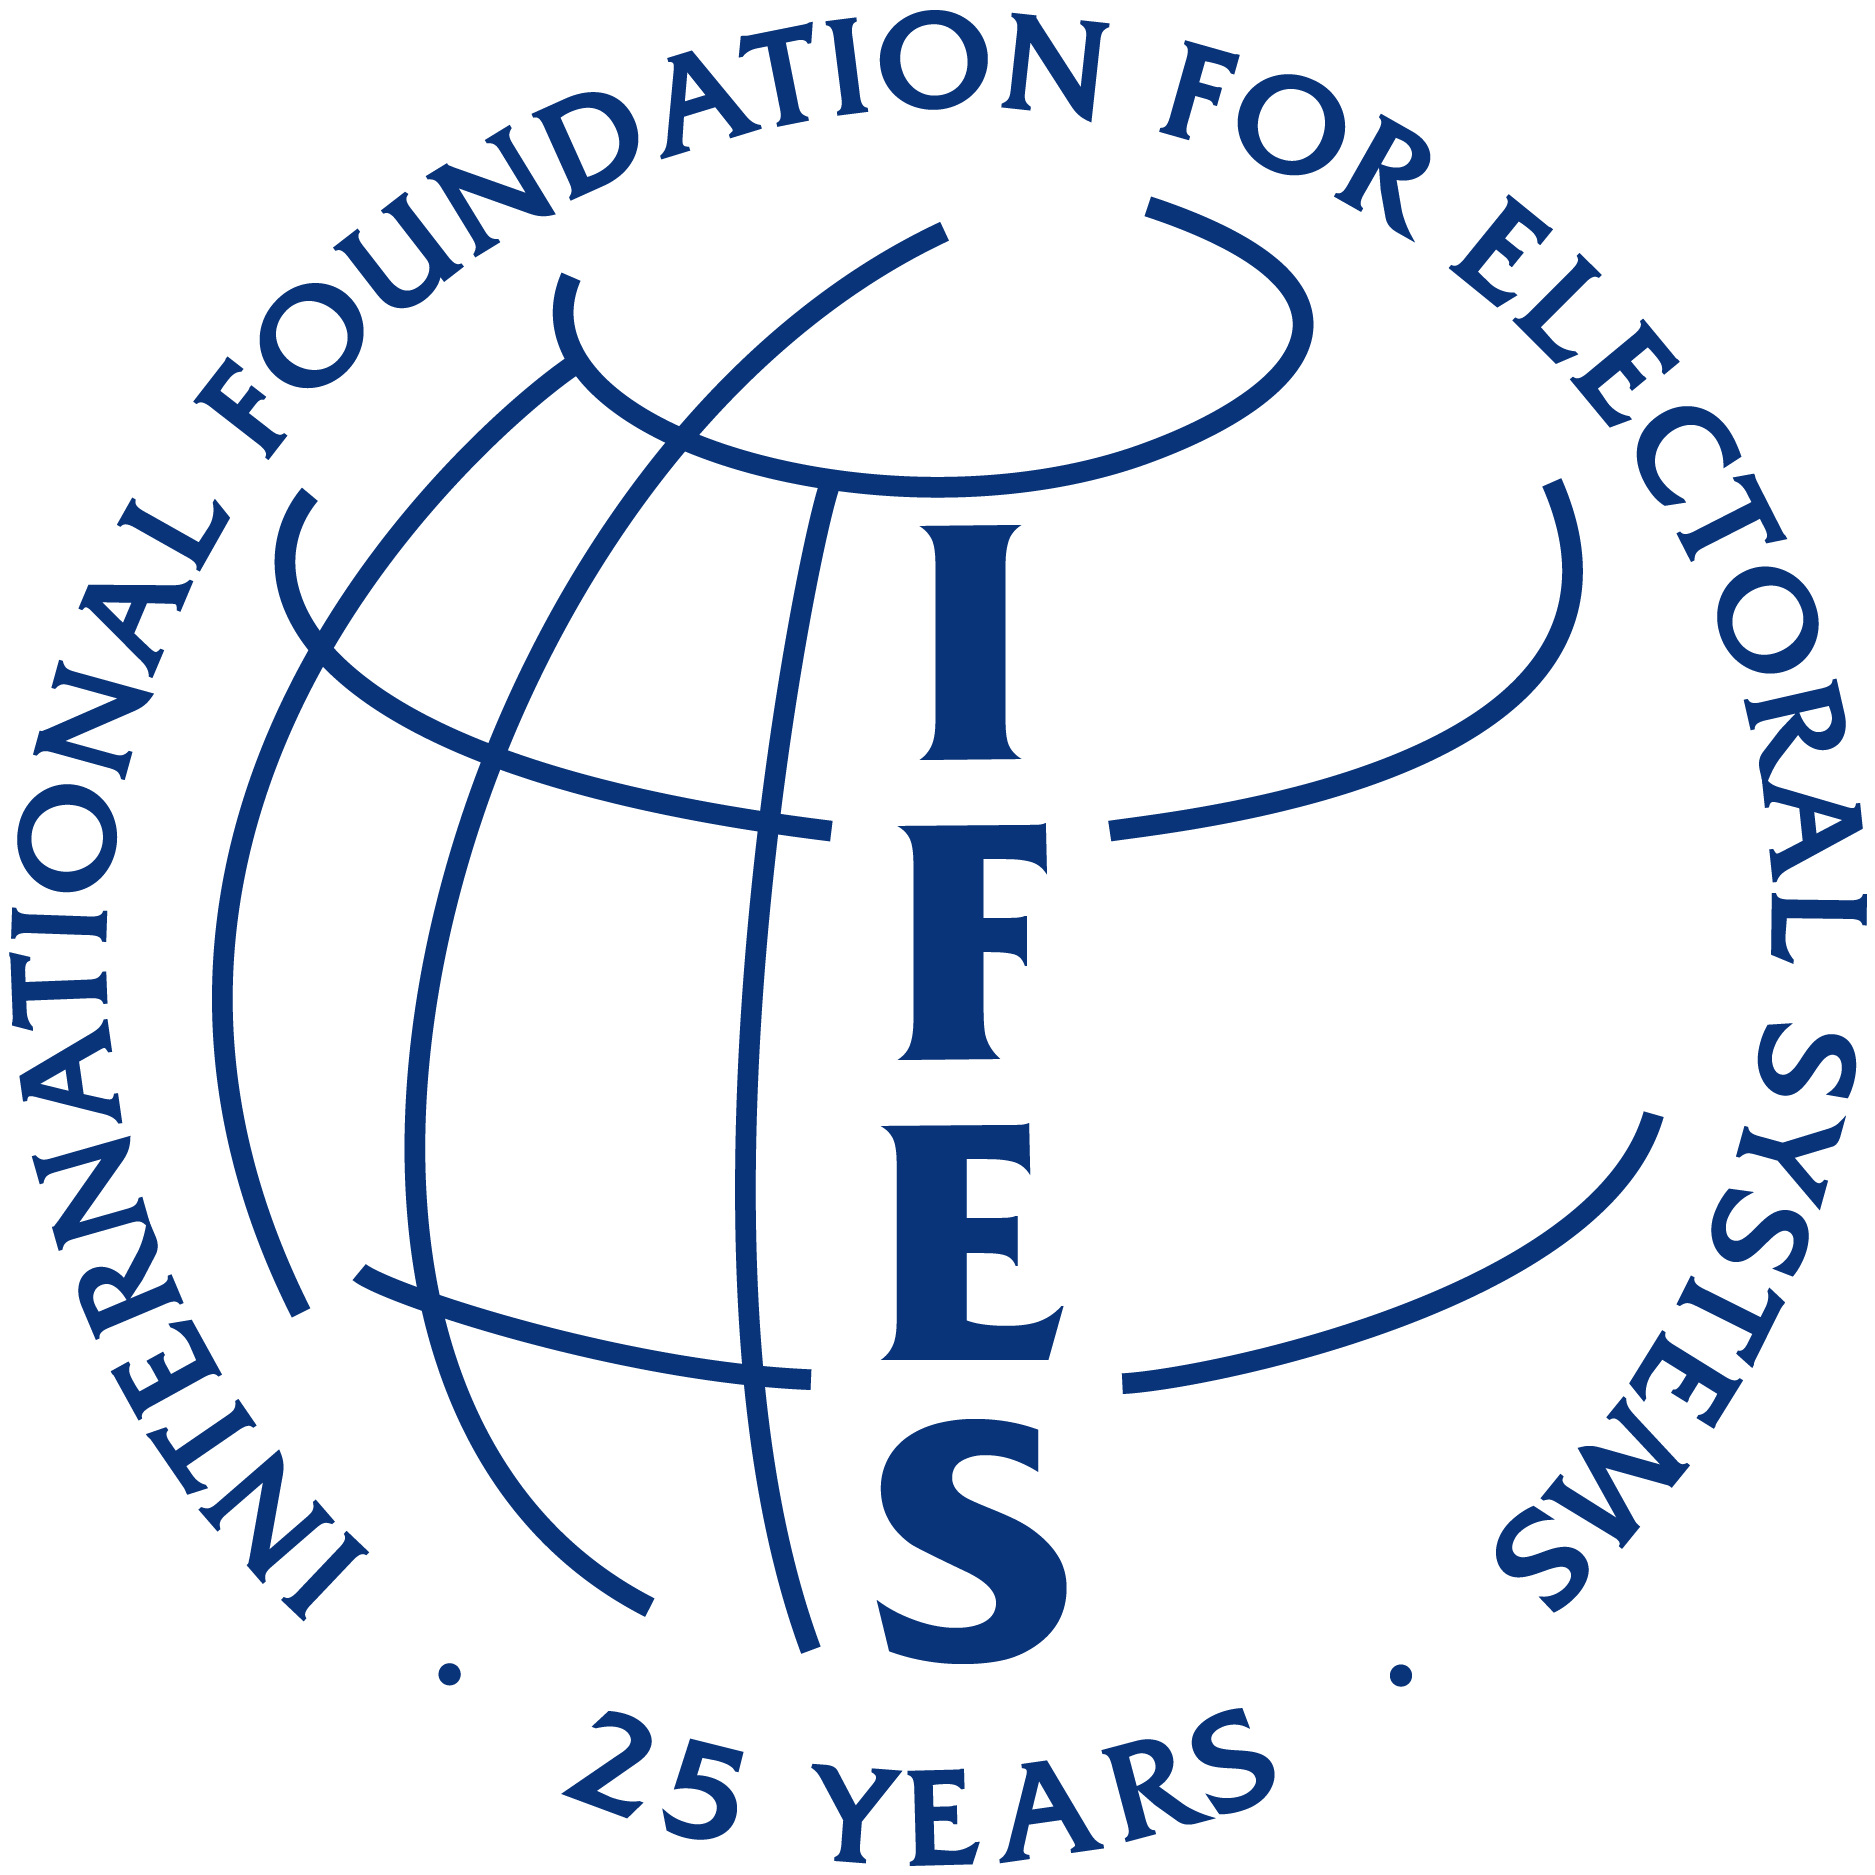 Logo of the International Foundation for Electoral Systems